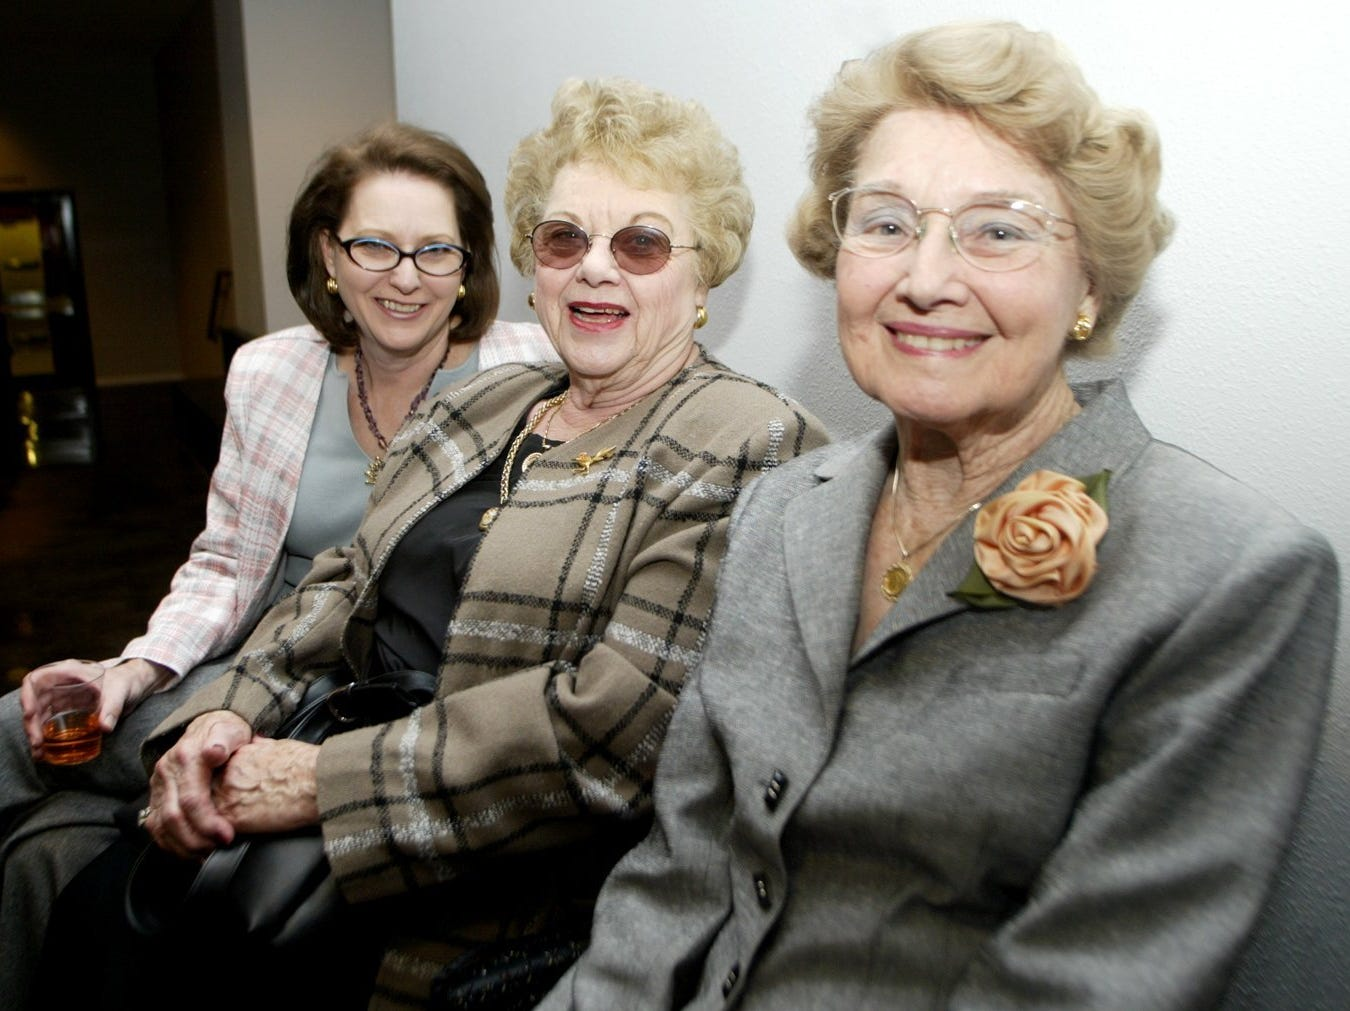 10/23/2003 Jenna Welch, mother of first lady Laura Bush, foreground, with, from left, Jenna Sims and Mary Bowhay.